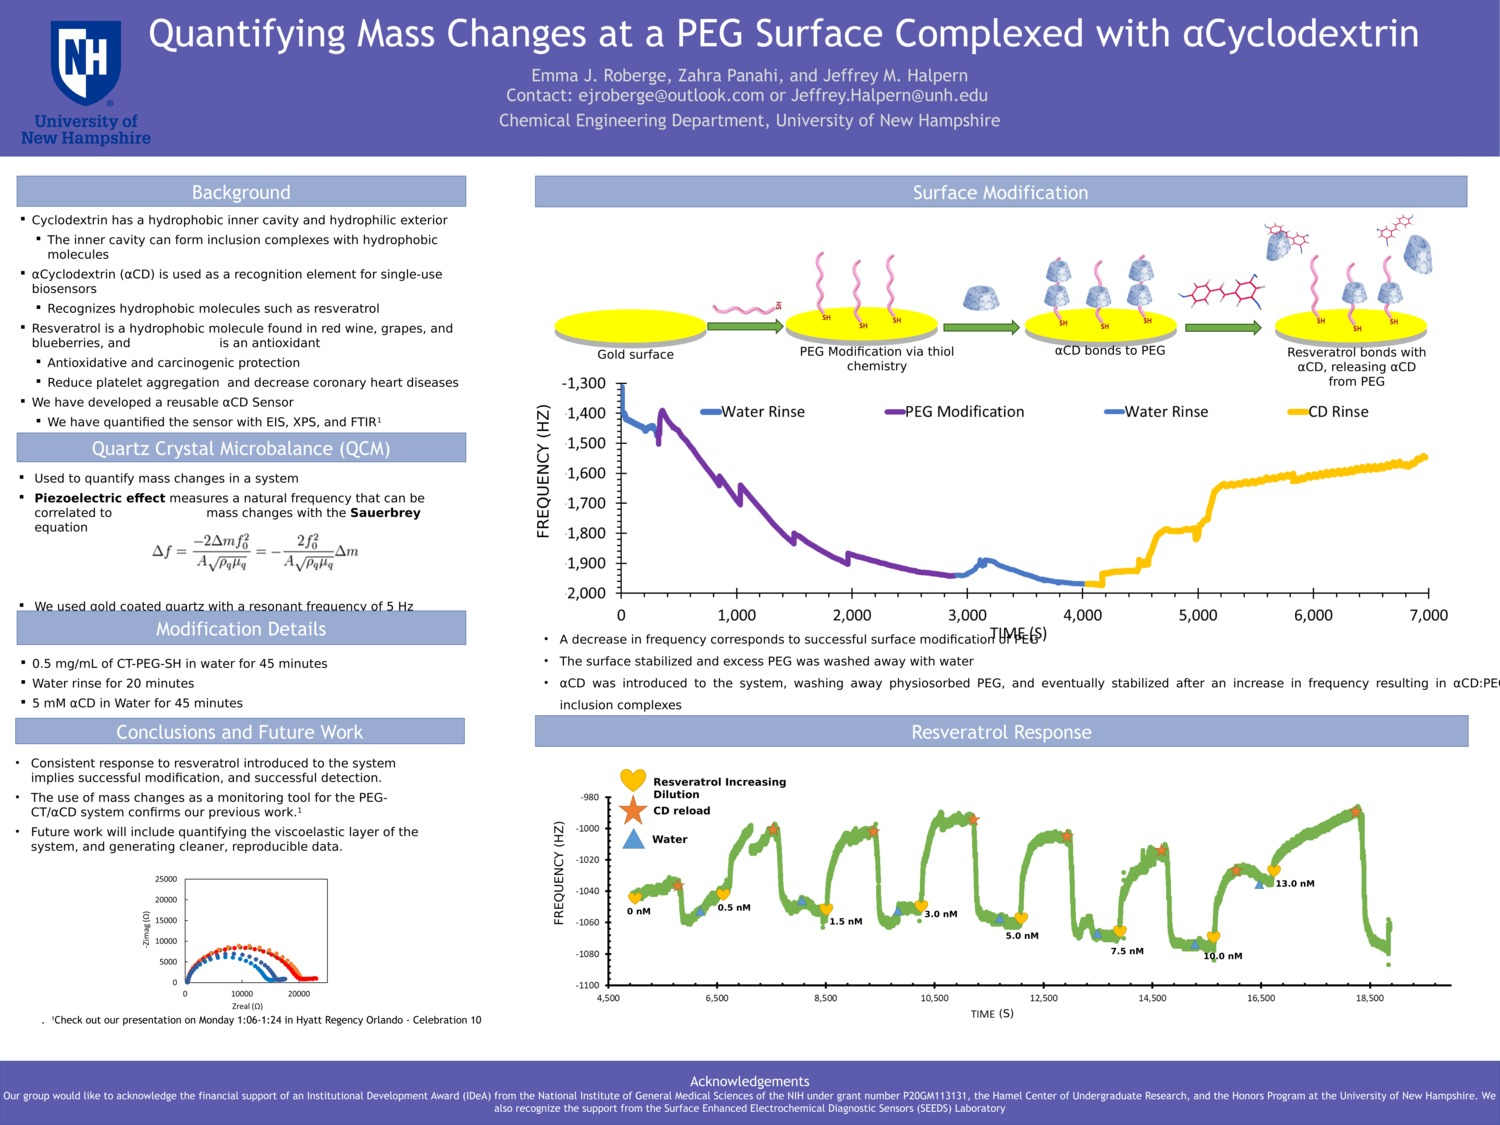 Quantifying Mass Changes At A Peg Surface Complexed With Αcyclodextrin by ejr1031